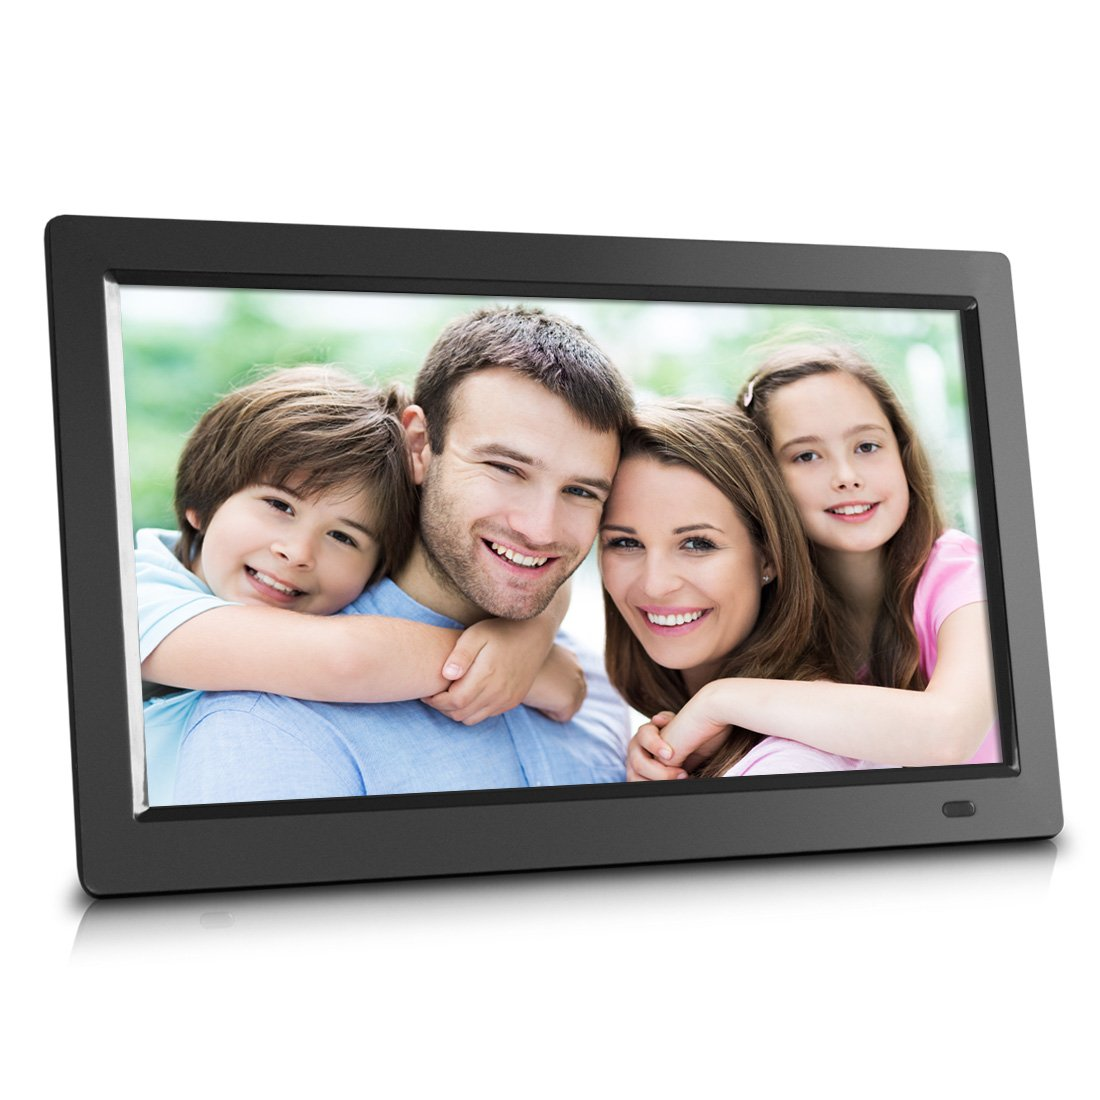 Sungale 14 Inch WiFi Cloud Digital Photo Frame with Remote Control, Free Cloud Storage, High-Resolution 1366x768 LED Display (Black) by Sungale